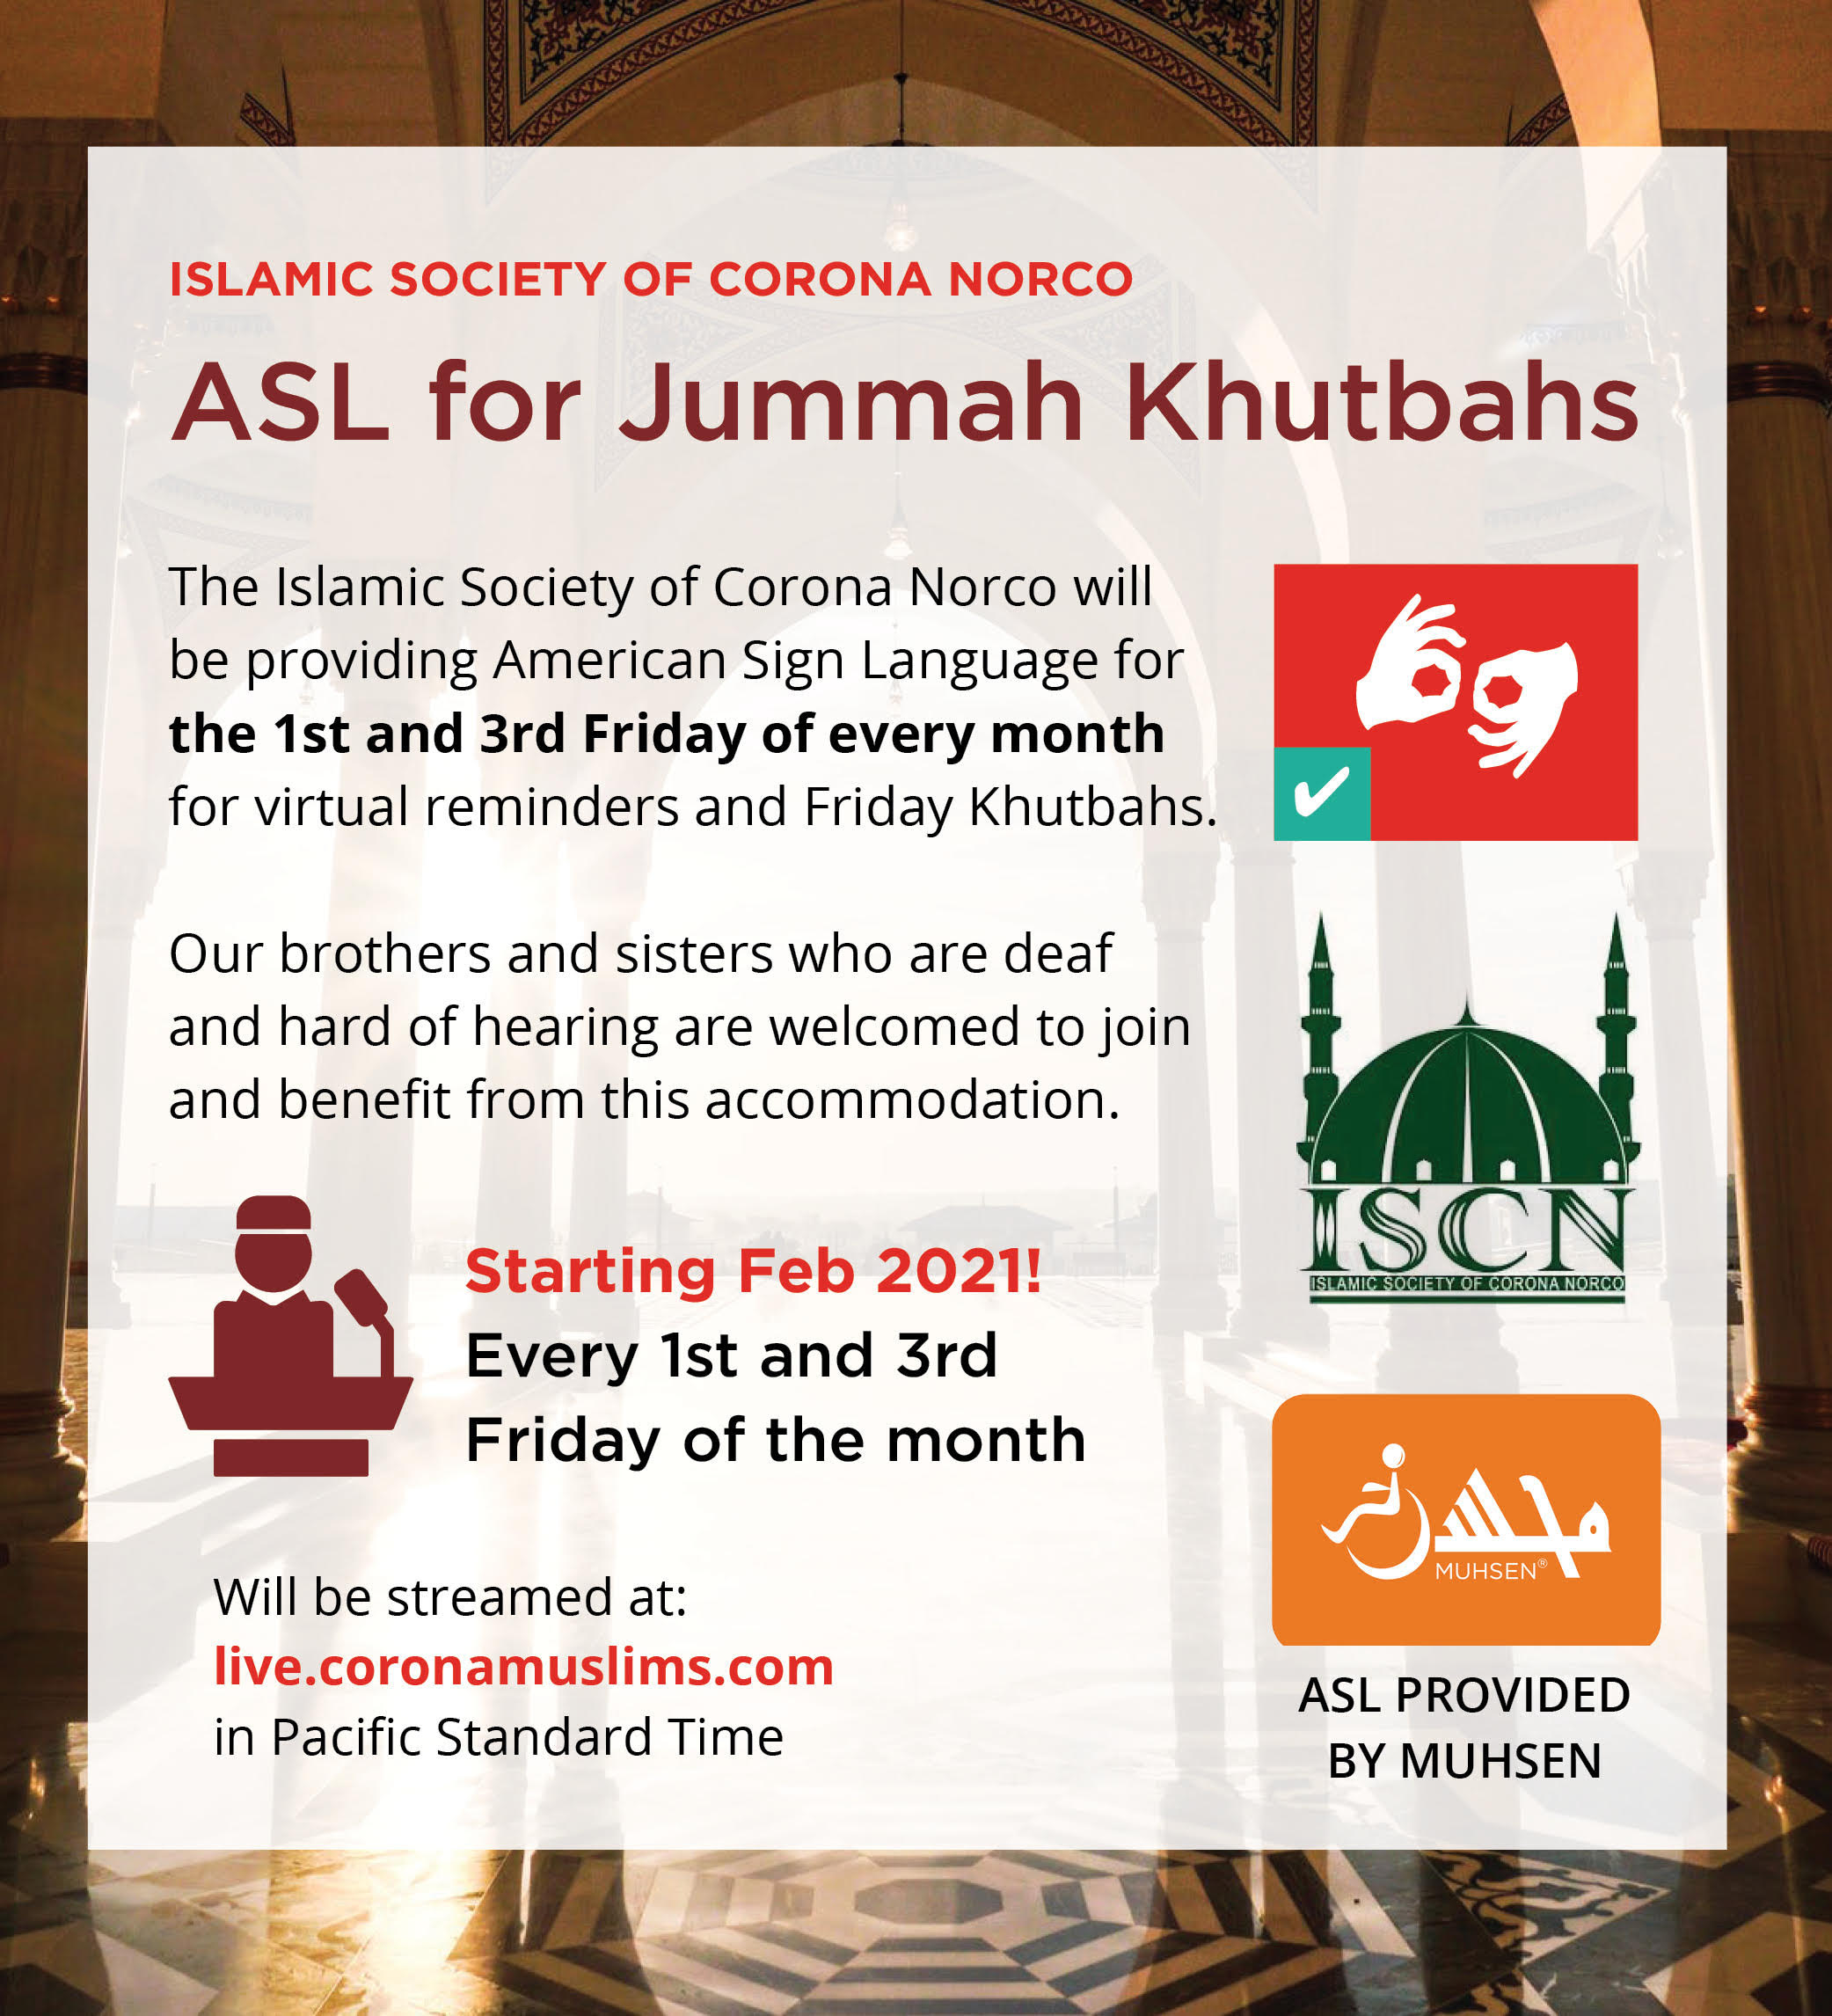 Masjid background with white text box on top. At the top is rext that reads Islamic Society of Corona Norco. Below is maroon text that reads ASL for Jummah Khutbahs. Below is black text that reads The Islamic Society of Corona Norco will be providing American Sign Language for the 1st and 3rd Friday of every month for virtual reminders and Friday Khutbahs. Our brothers and sisters who are deaf and hard of hearing are welcomed to join and benefit from this accommodation. Starting Feb 2021! Every 1st and 3rd Friday of the month. Will be streamed at live.coronamuslims.com in Pacific Standard Time. To the left are three imaged. At the top left is a read square with a white interpreting icon. Beneath is a green ISCN logo. Below is an orange box with a white muhsen logo and text that reads ASL provided by MUHSEN